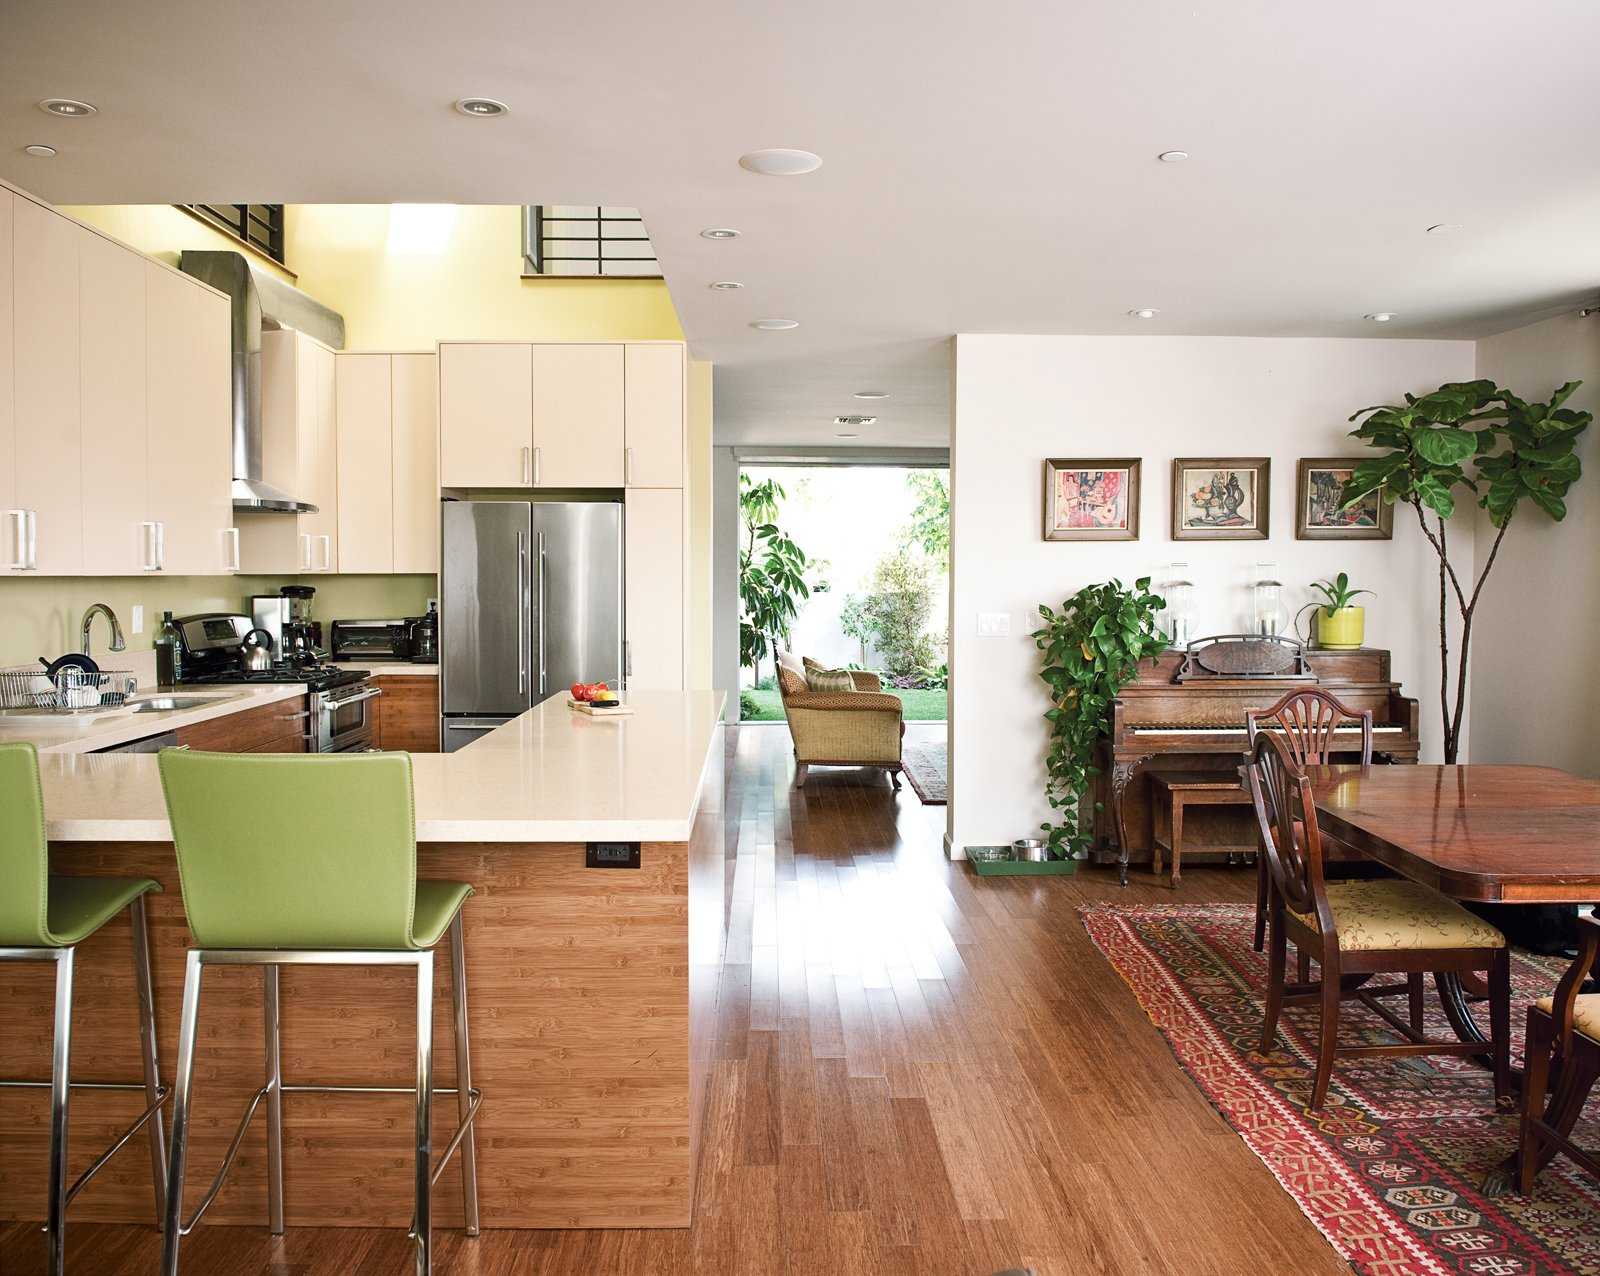 Developer Michael Kyle and his wife Joanne Higgins mix old and new in their living and kitchen areas.